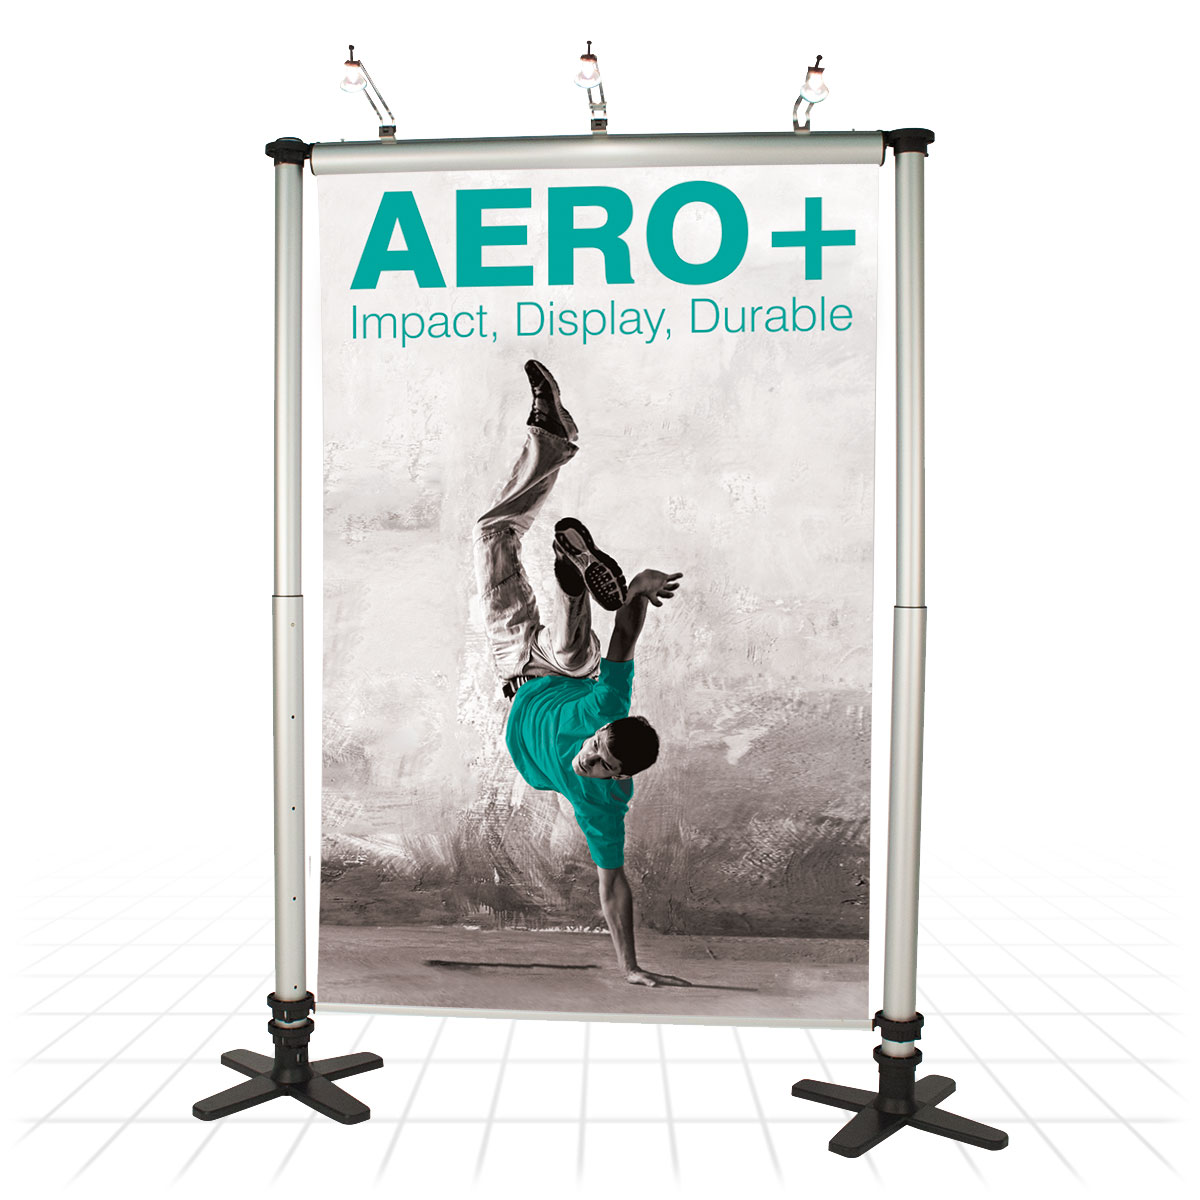 Small Exhibition Stand Quotes : Aero linkable banner stands